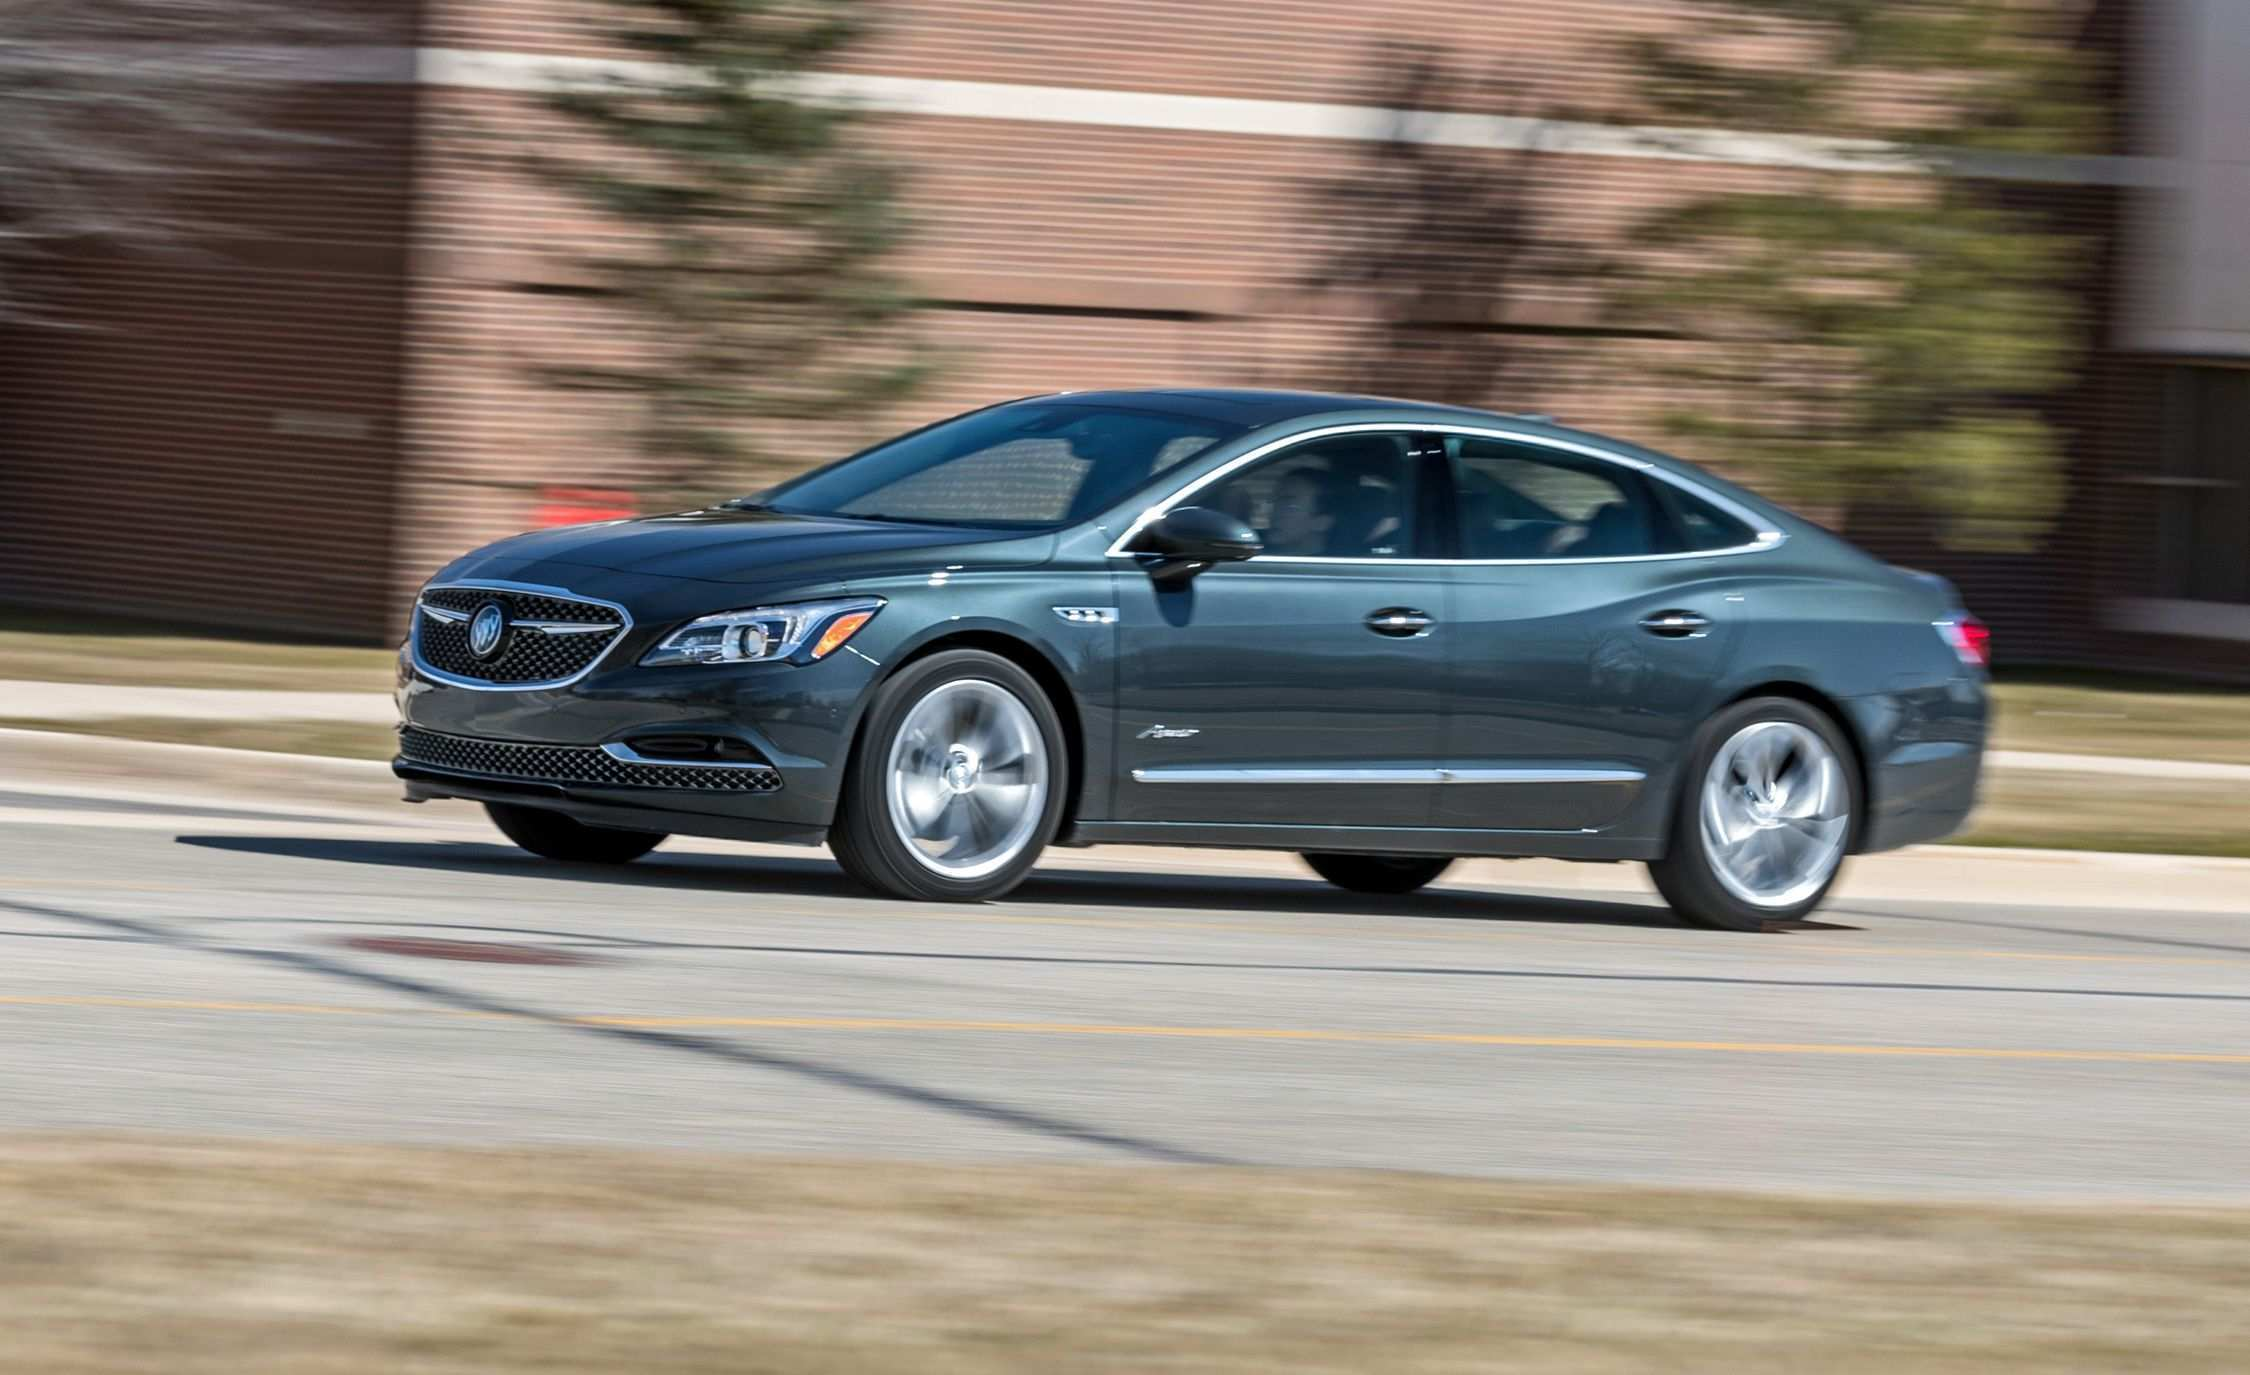 45 Concept of New Buick Lacrosse 2019 Reviews Concept Redesign And Review Model with New Buick Lacrosse 2019 Reviews Concept Redesign And Review